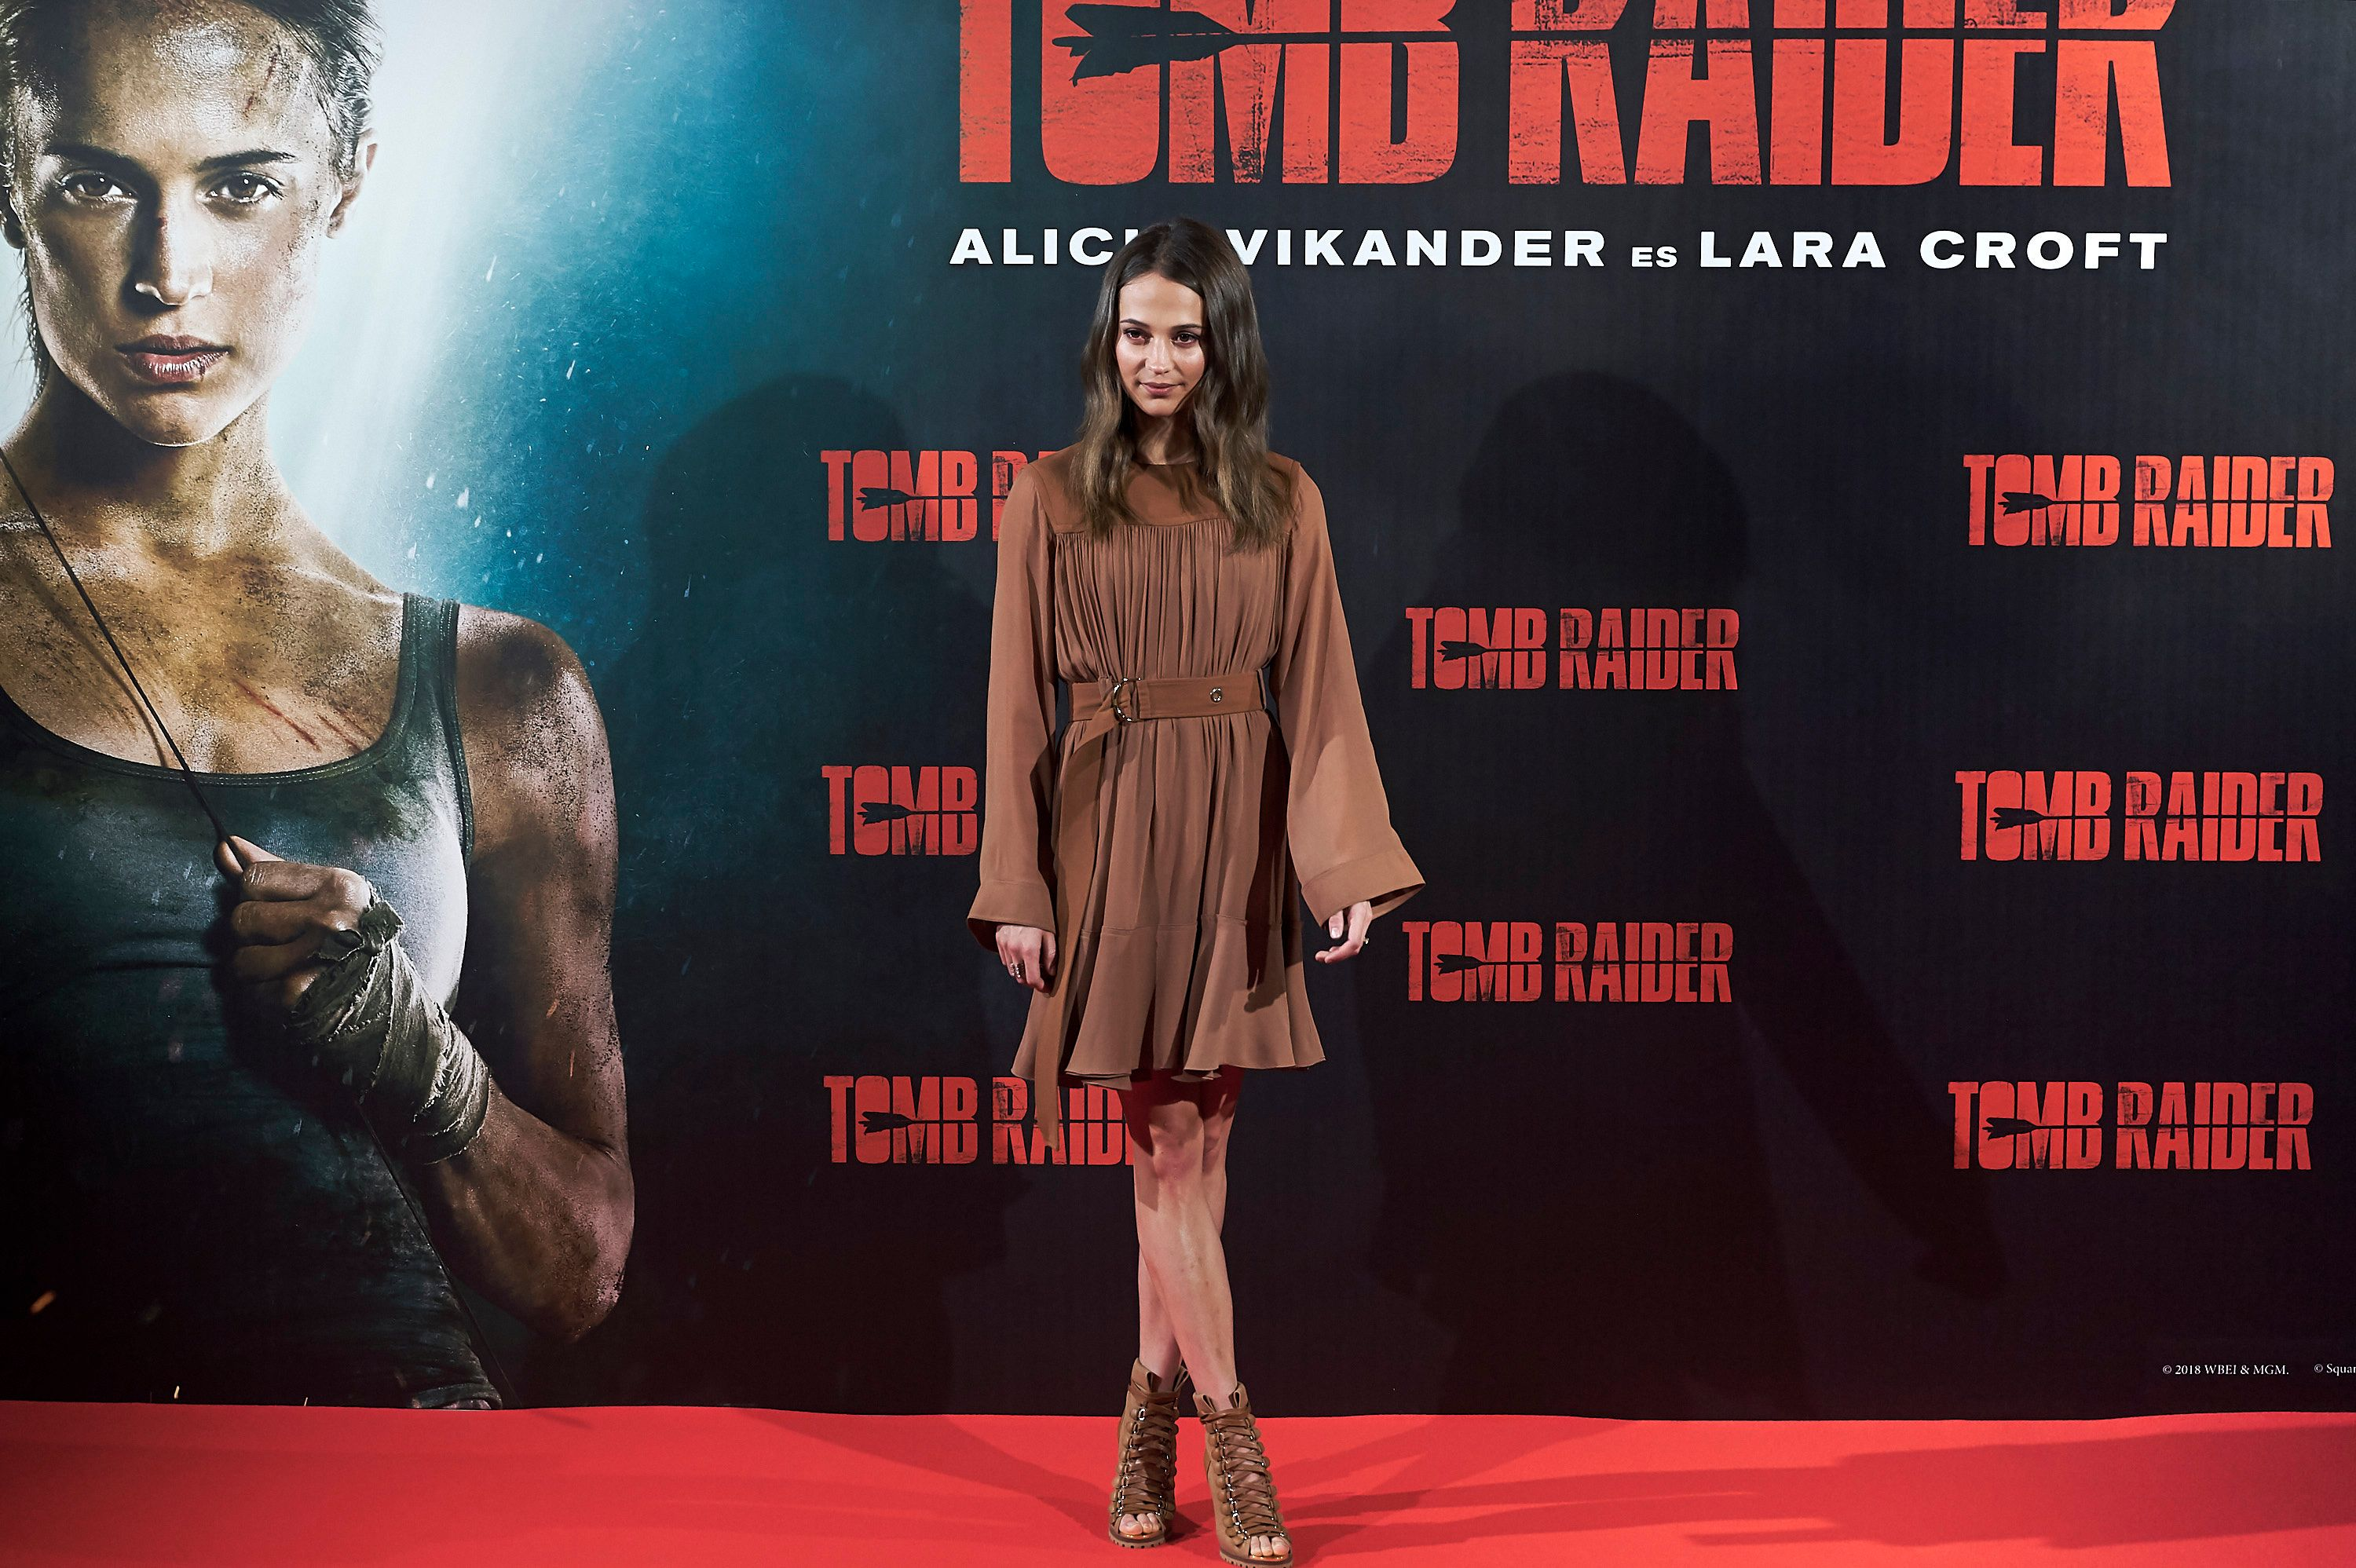 Alicia Vikander stands in a brown dress in front of a 'Tomb Raider' billboard.